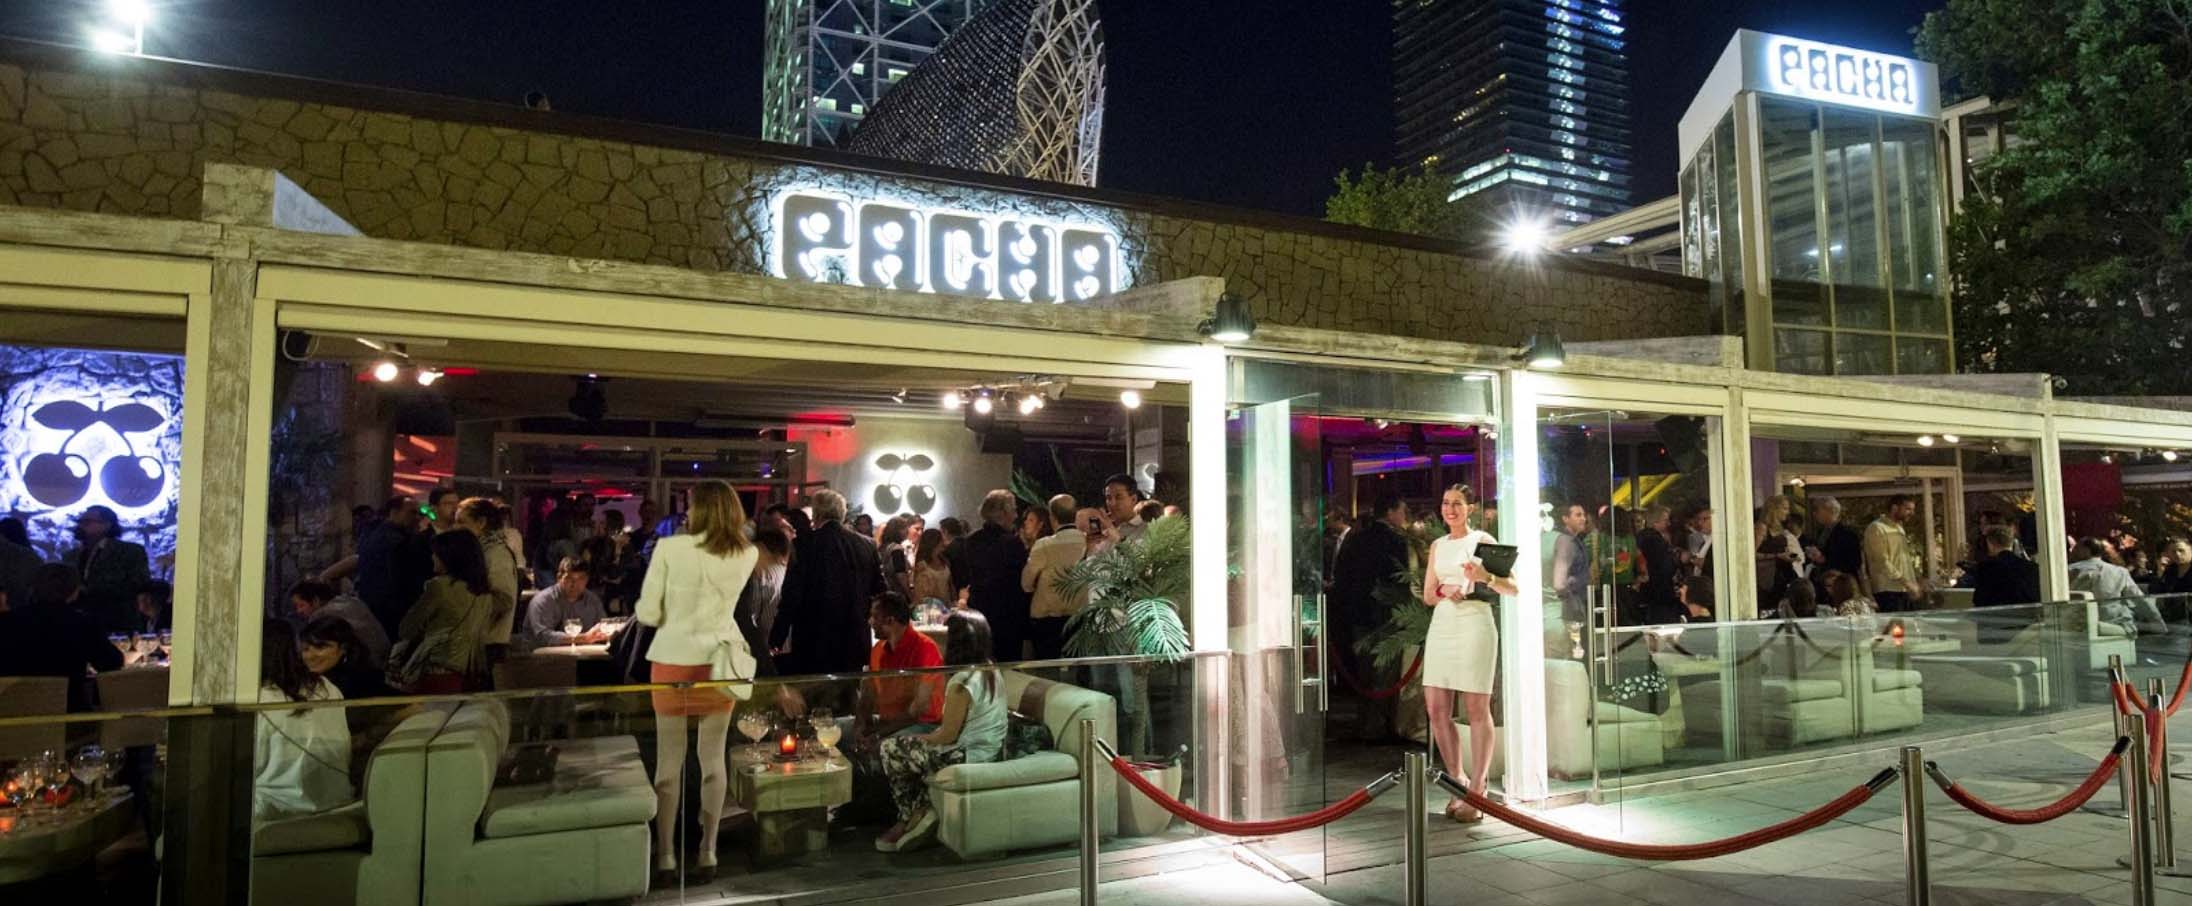 3ec19679be8a Pacha Barcelona - VIP Tables and Prices I Club Bookers Barcelona